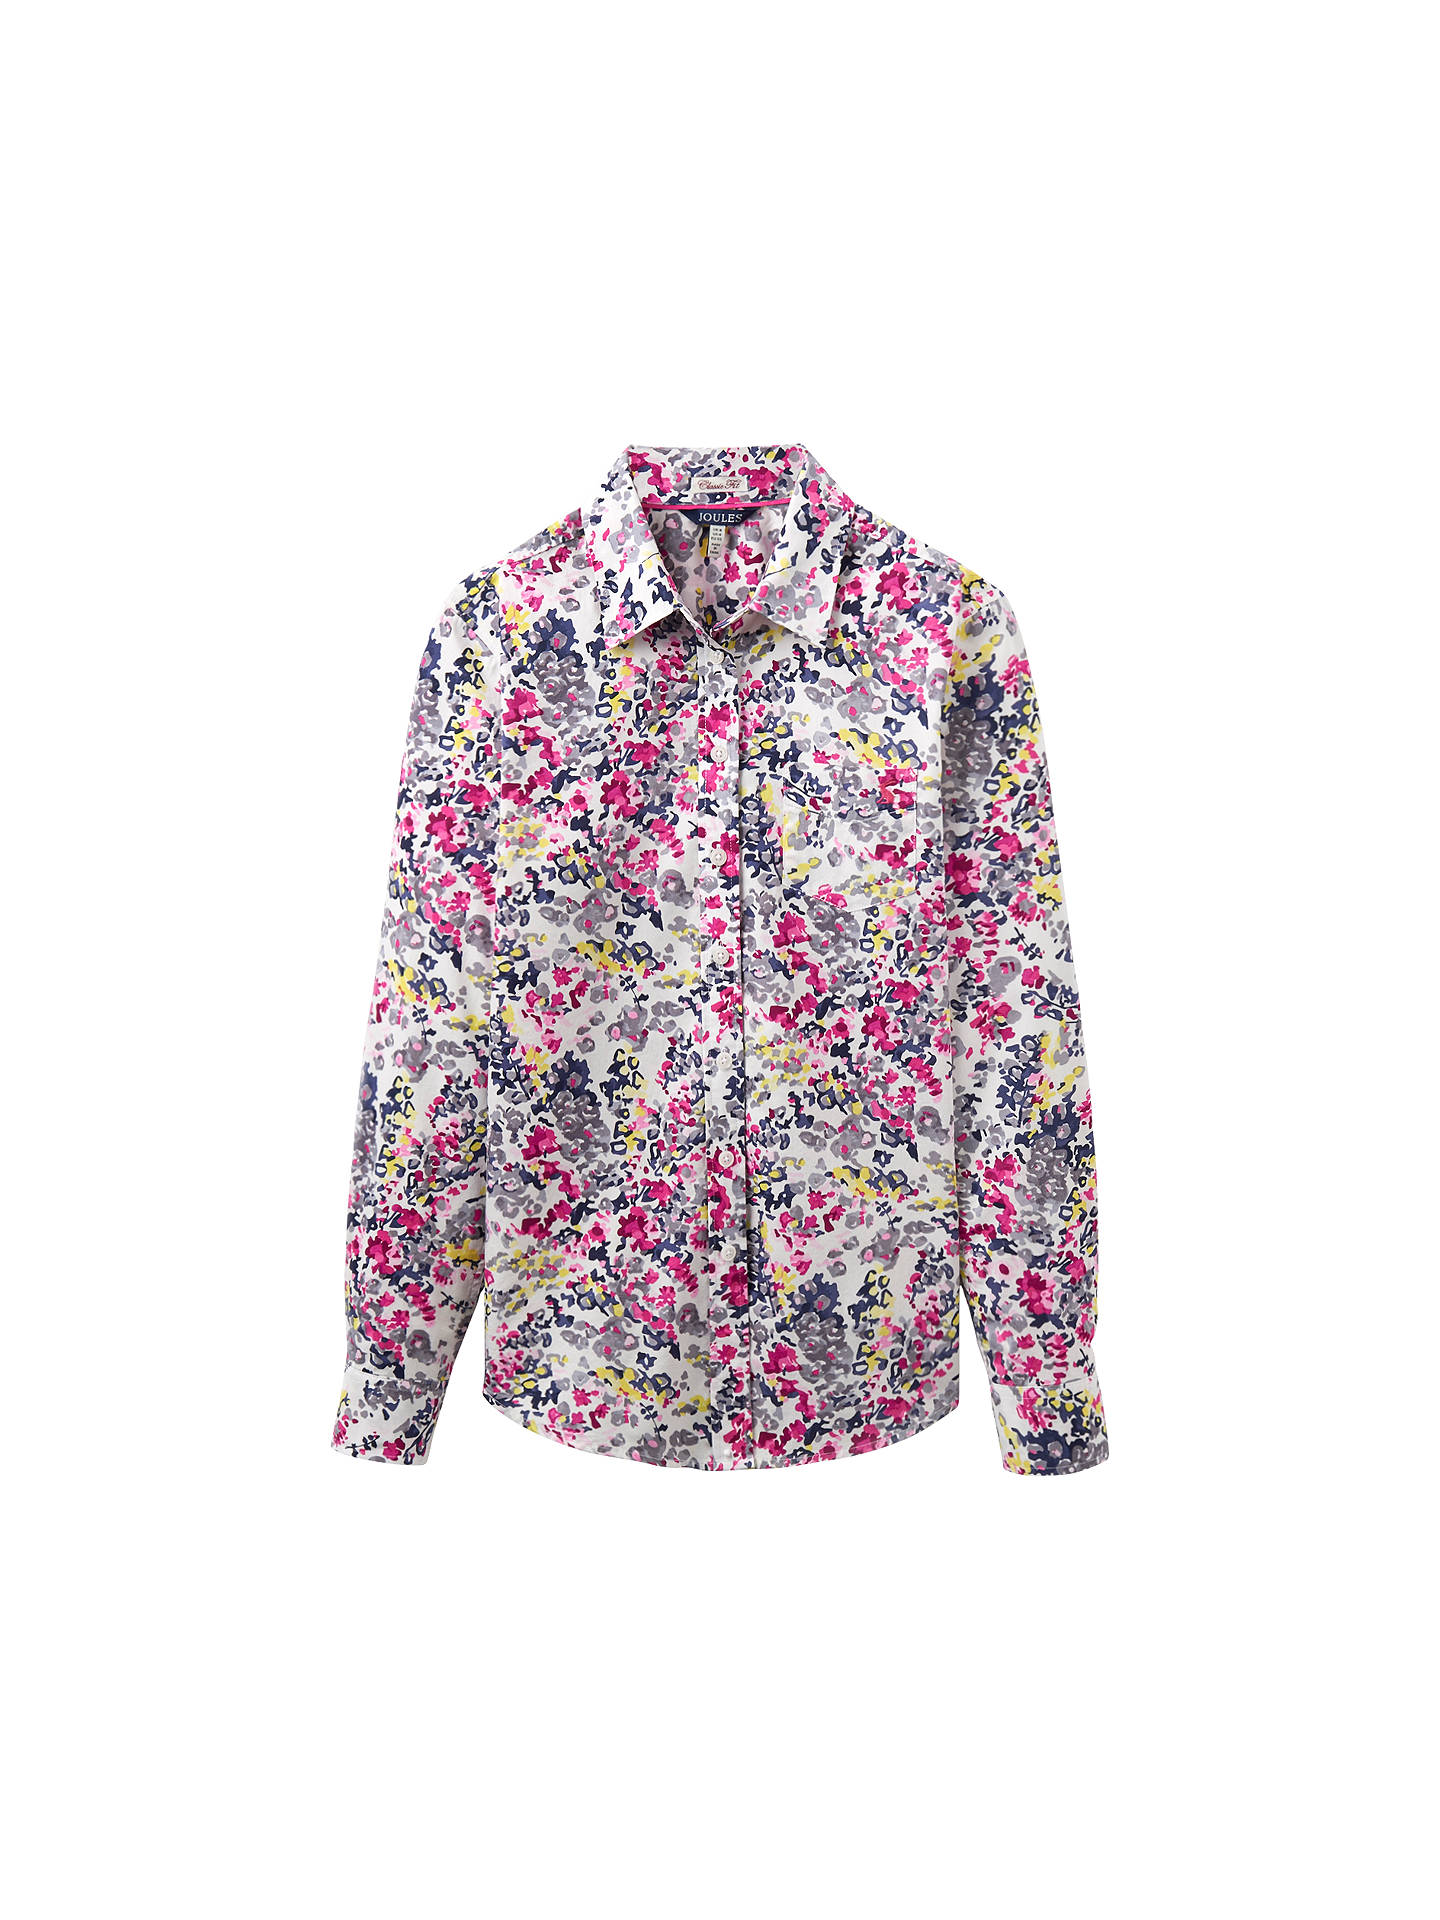 Ditsy Joules Floral Shirt Print At Lucie Lewis Scatter Cream John 7qR7pw